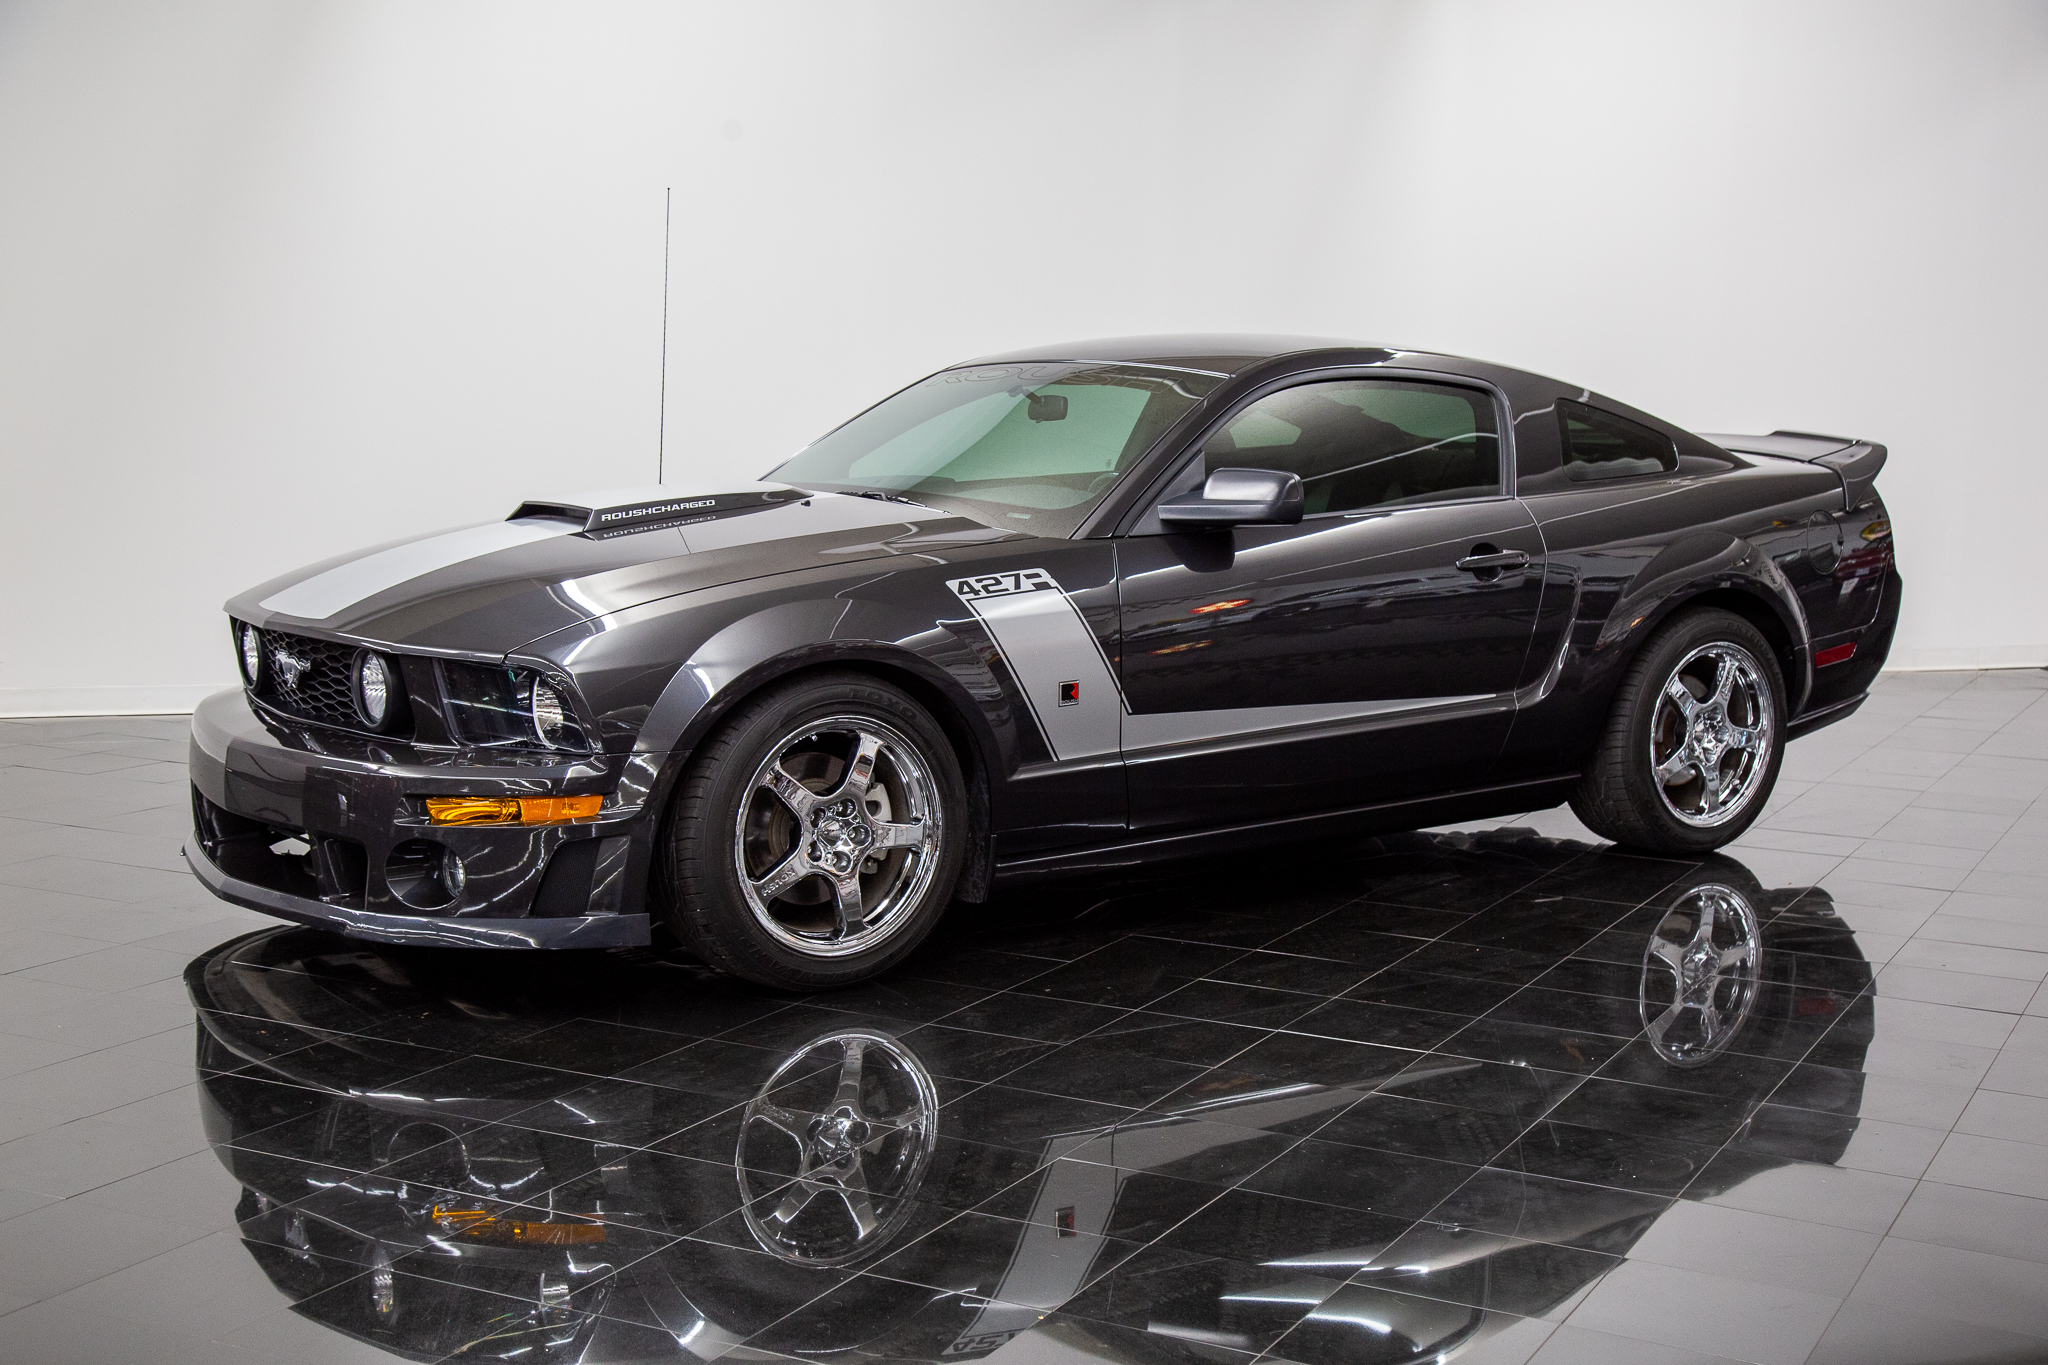 2007 Ford Mustang Roush 427R Coupe for sale